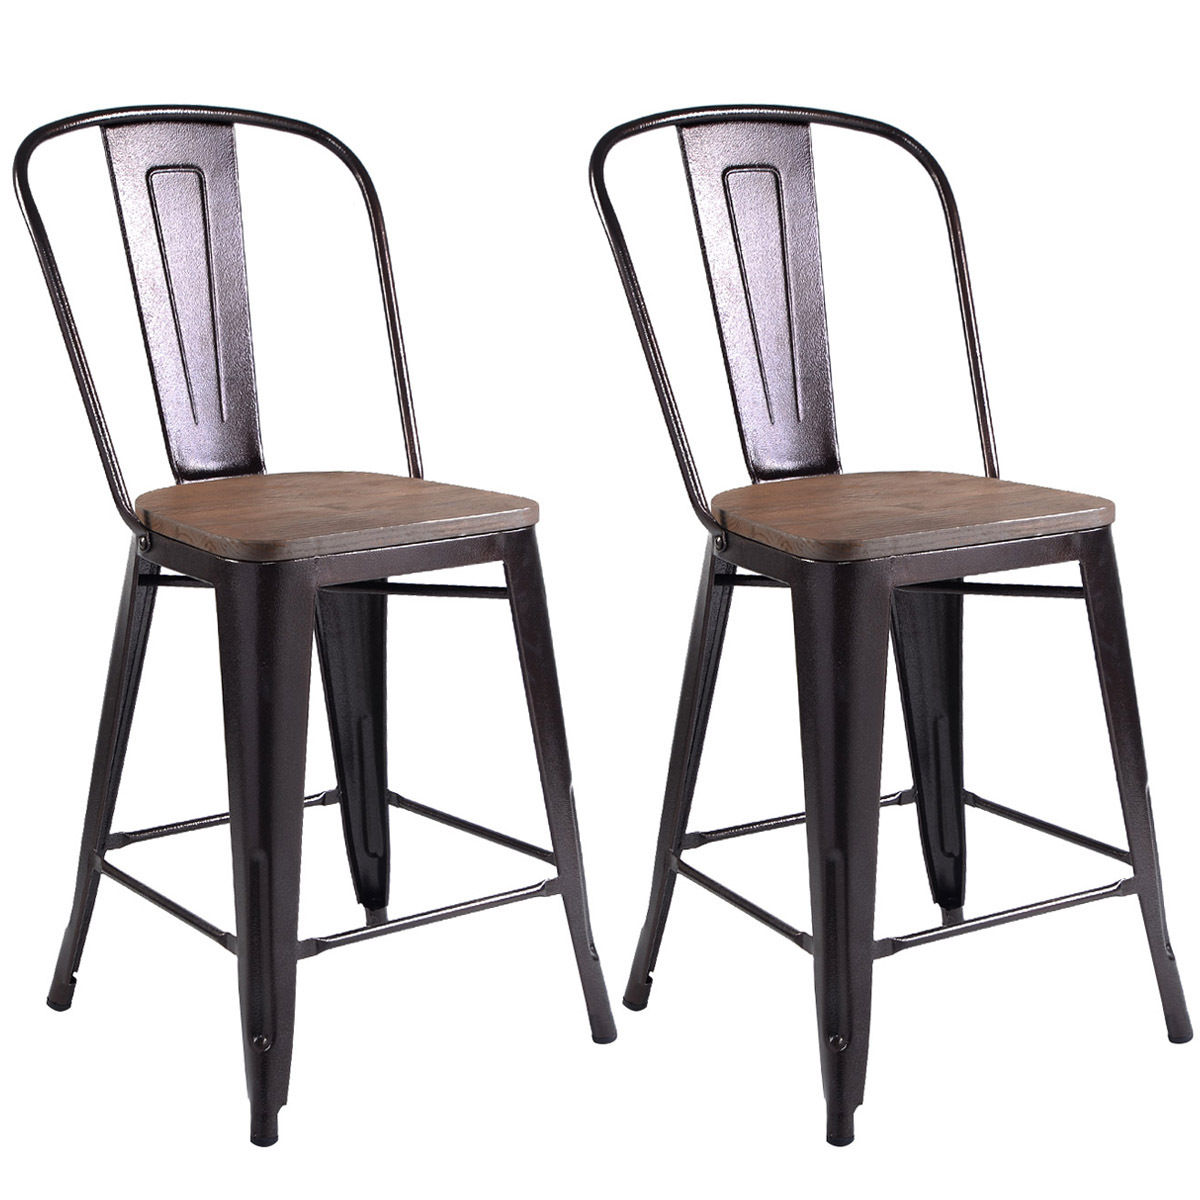 Rustic Bar Stools Clearance Full Size Of Bar Stoolsbar Stools Big Lots Bar Stools Clearance